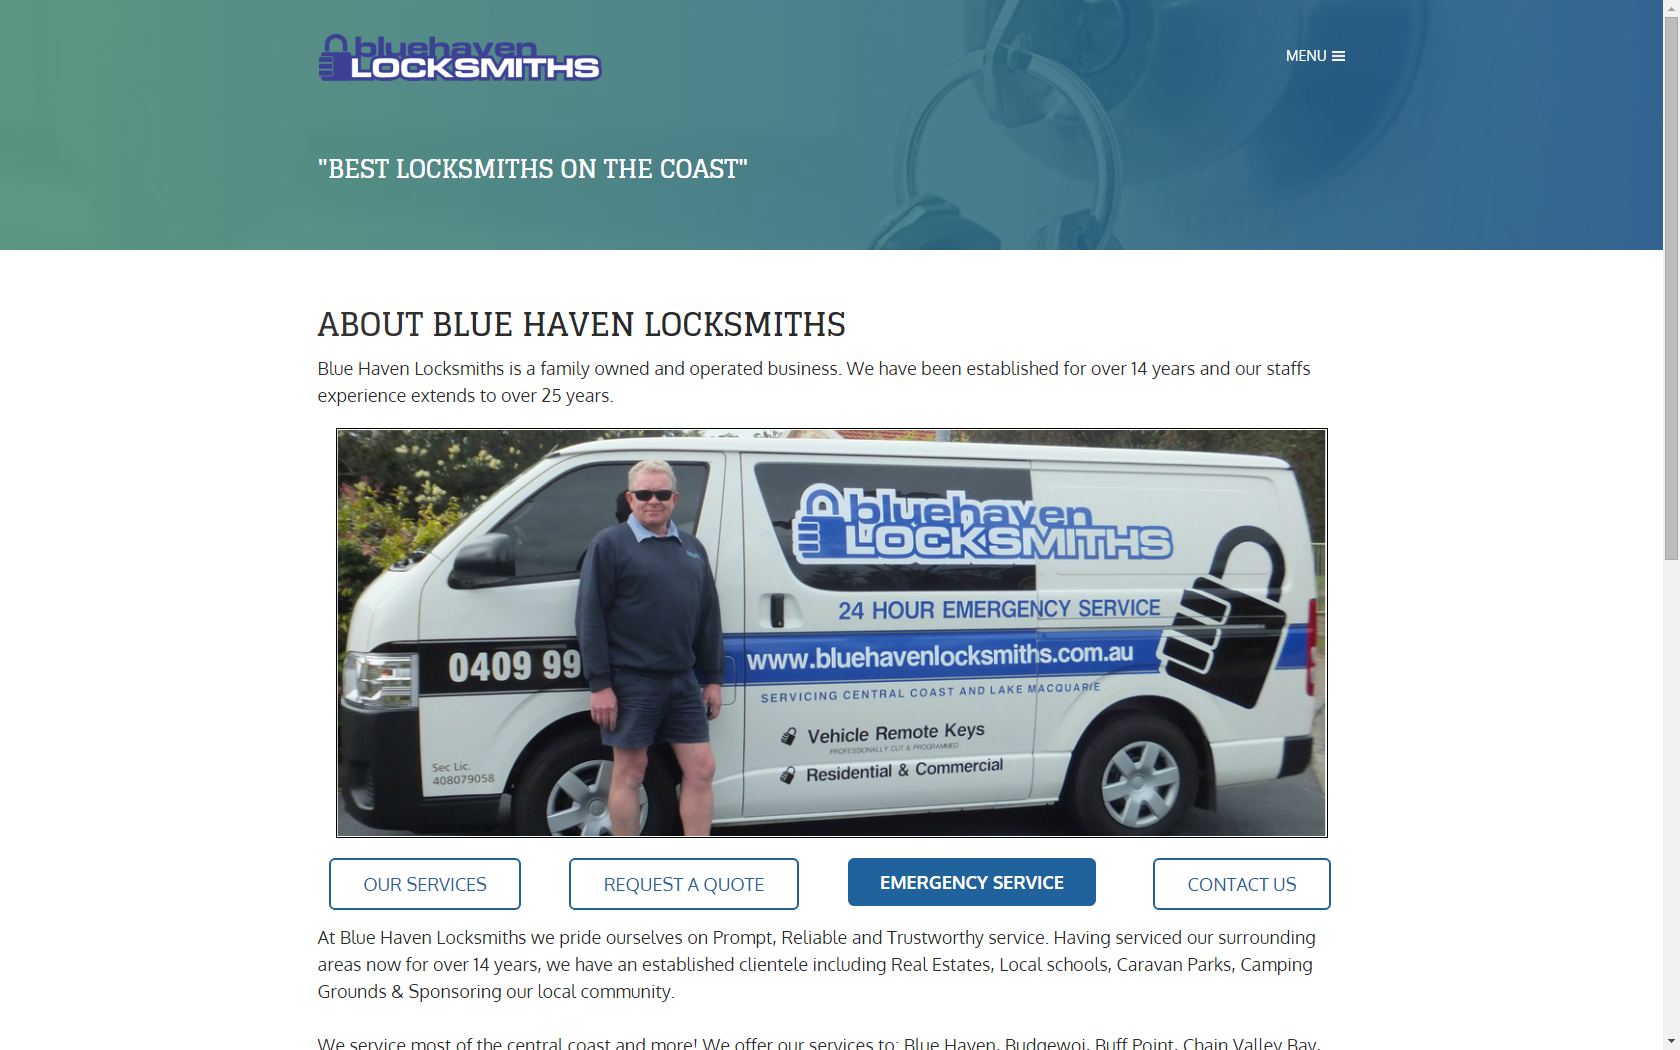 Blue Haven Locksmiths